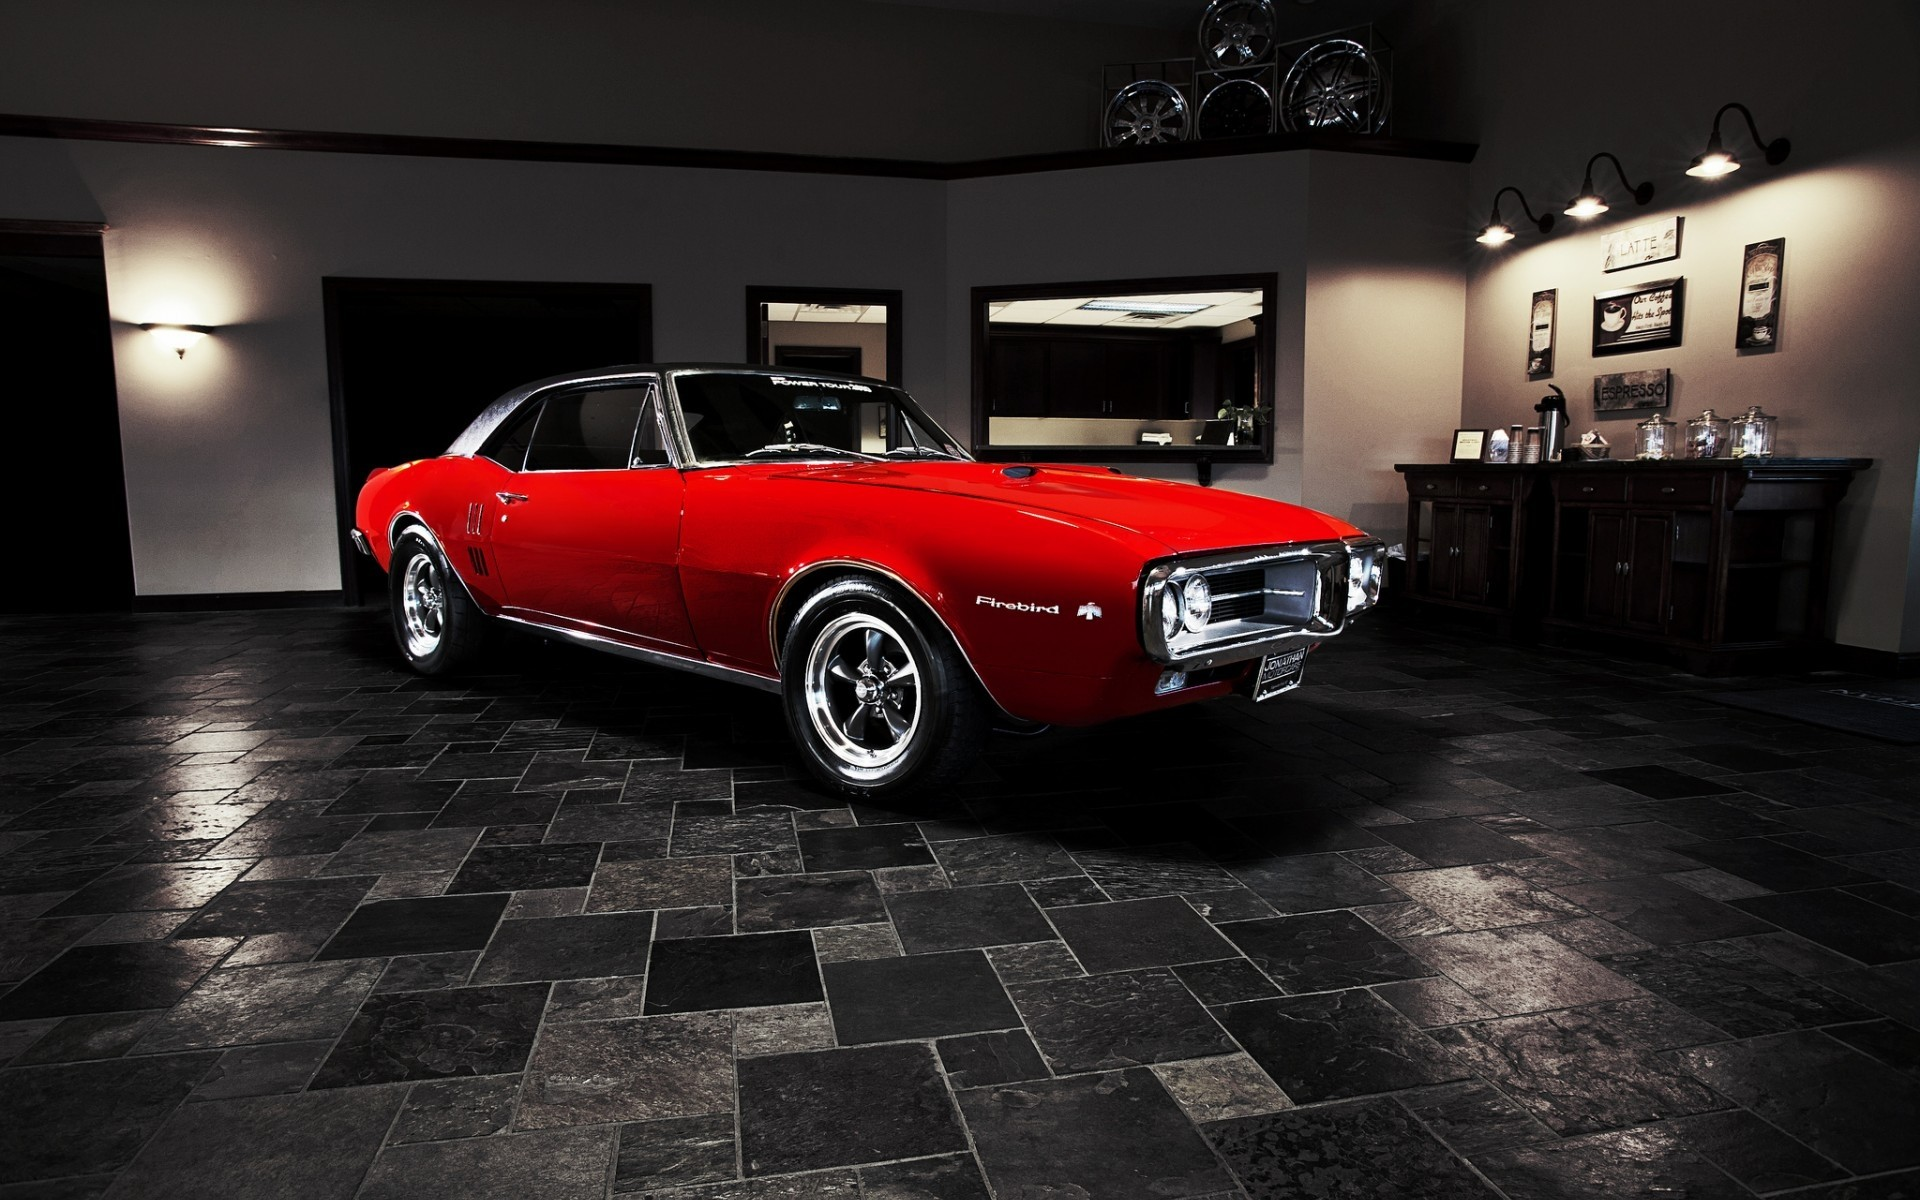 Bon 1920x1080 Pontiac Firebird Muscle Retro Crystal City Car 2014  .